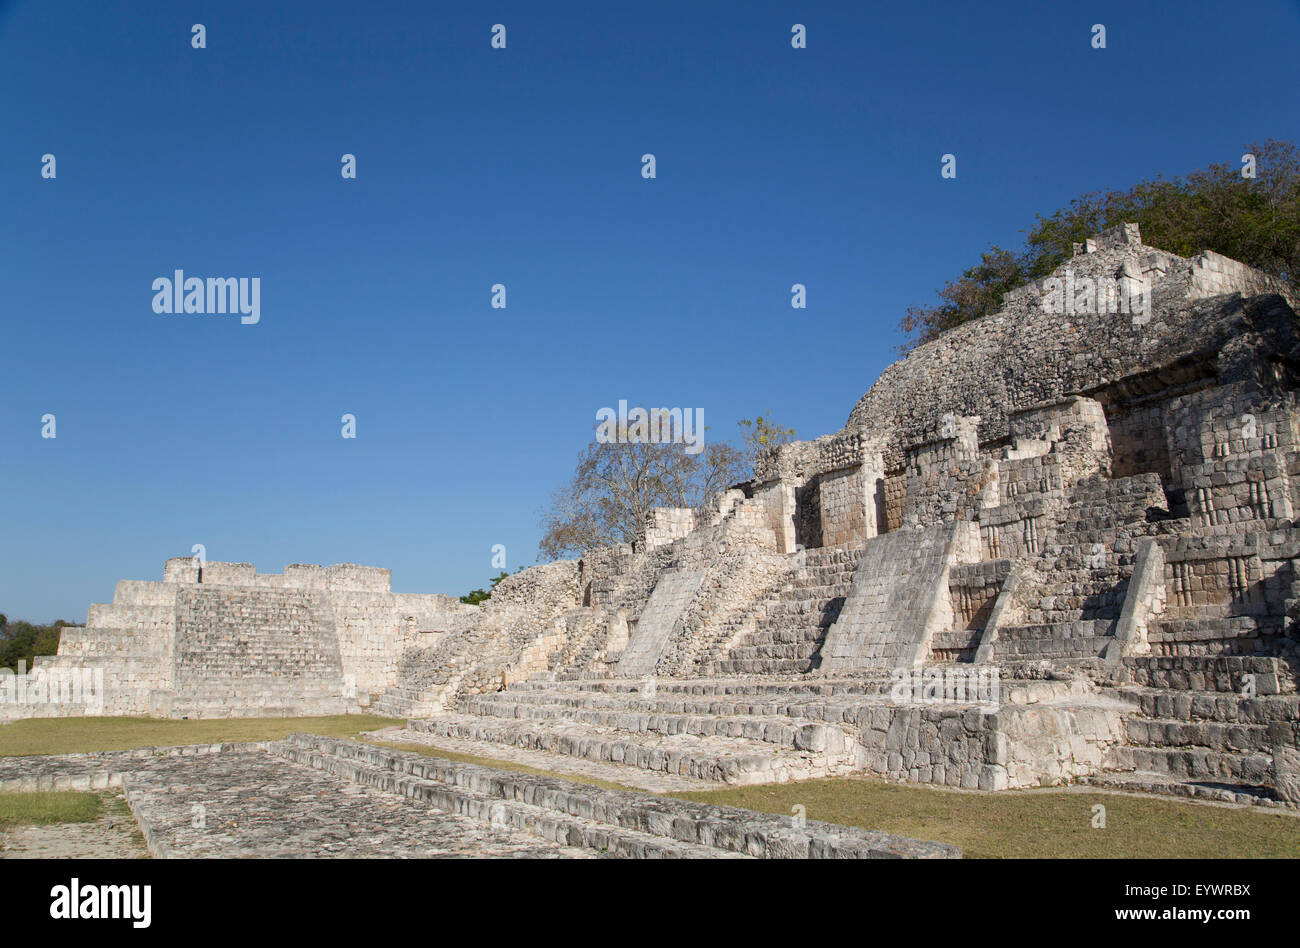 Patio Puuc in the foreground, and Northeastern Temple behind, Edzna, Mayan archaeological site, Campeche, Mexico, - Stock Image